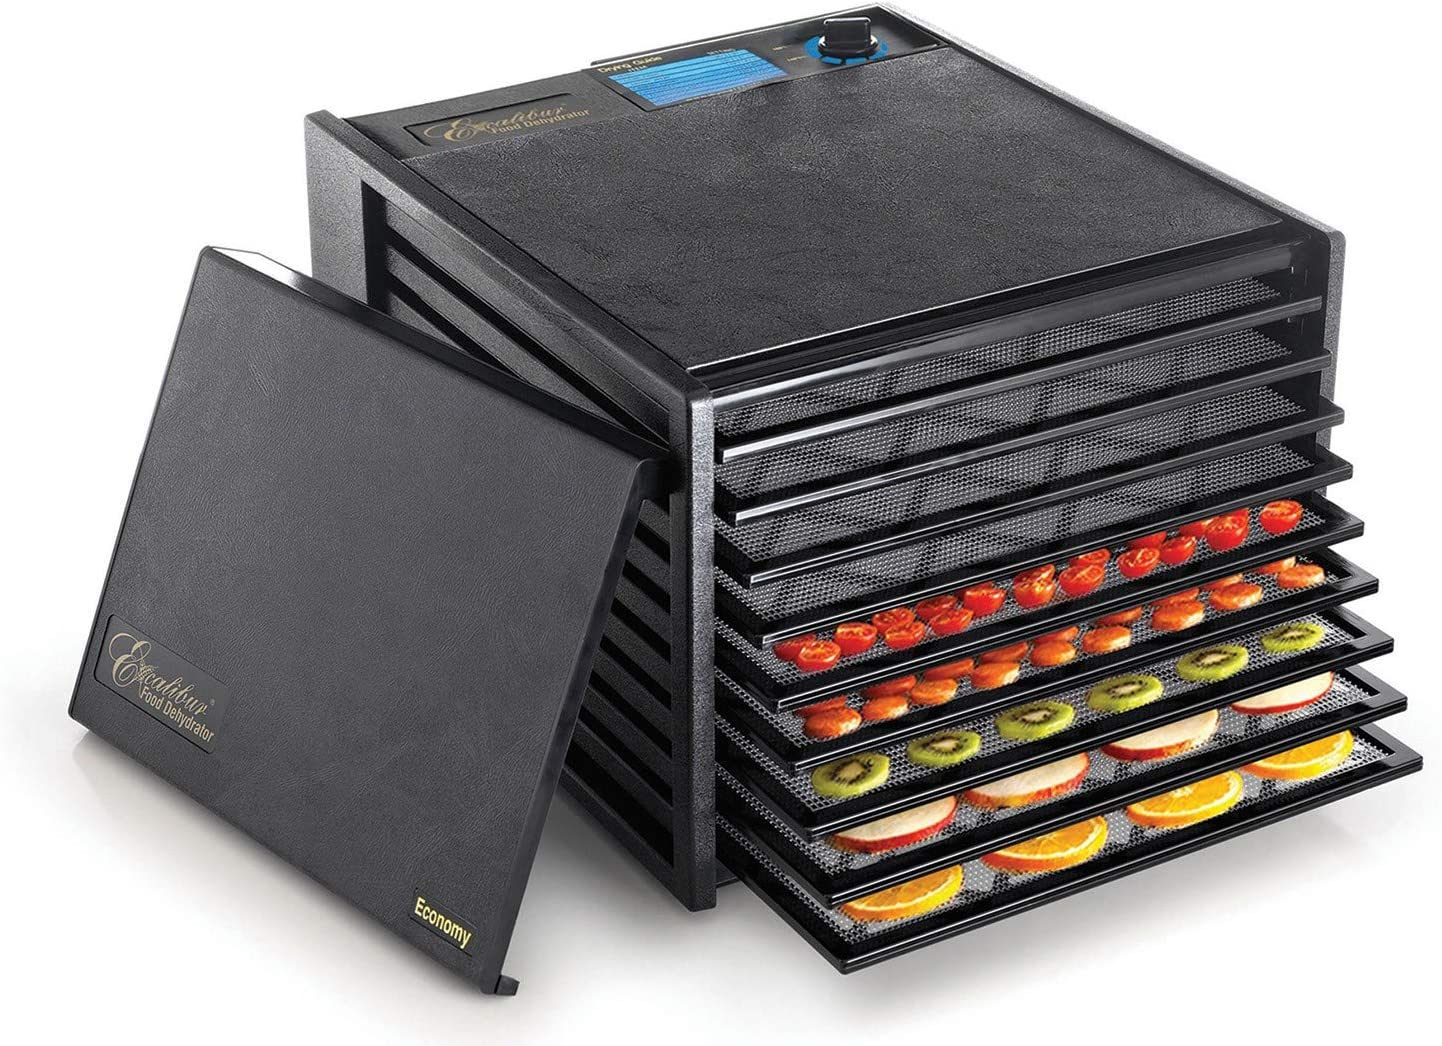 Excalibur 9-Tray Electric Food Dehydrator with Adjustable Thermostat For Temperature Control Patented Technology For faster & Efficient 15 Square Feet Drying Space, Black